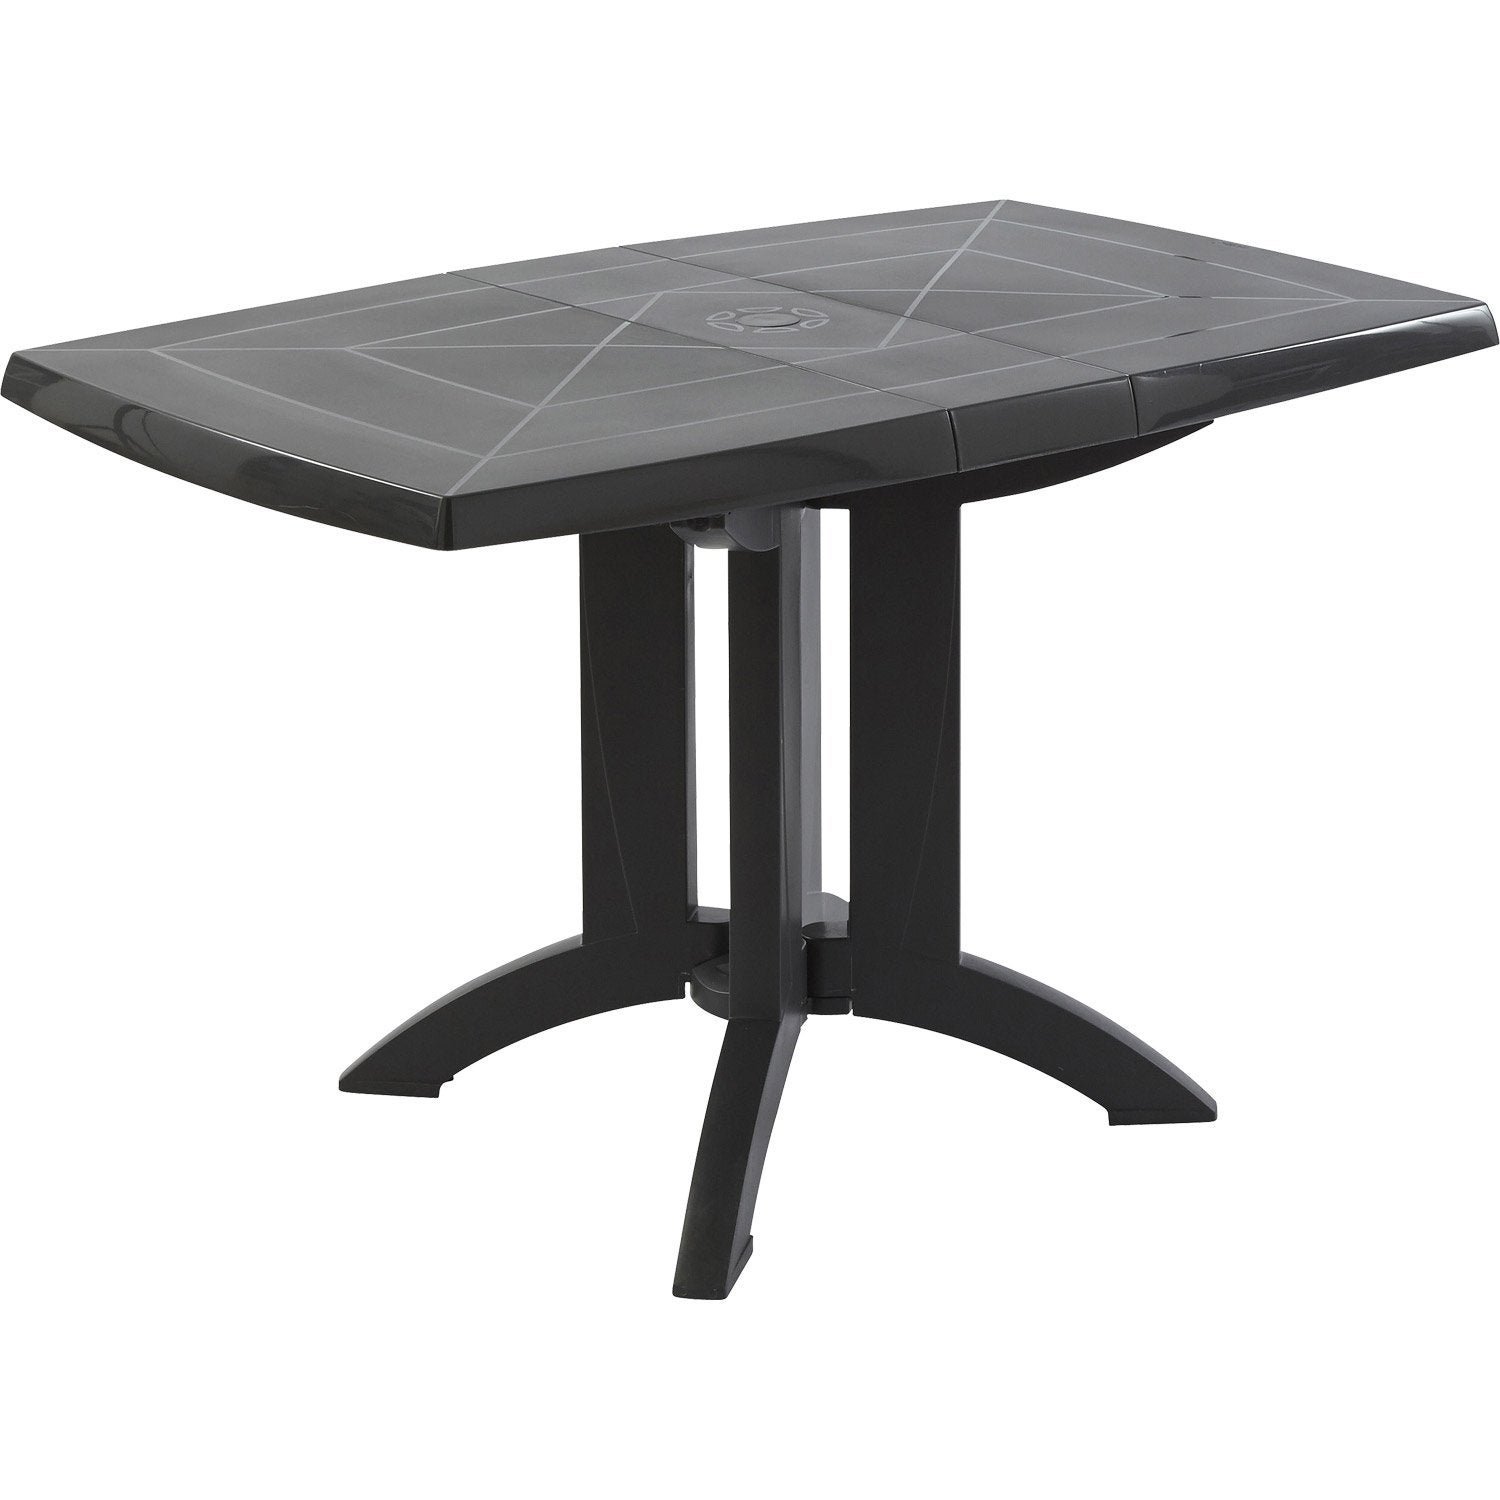 Table de jardin grosfillex v ga rectangulaire anthracite 4 personnes leroy merlin - Table de jardin lumineuse ...